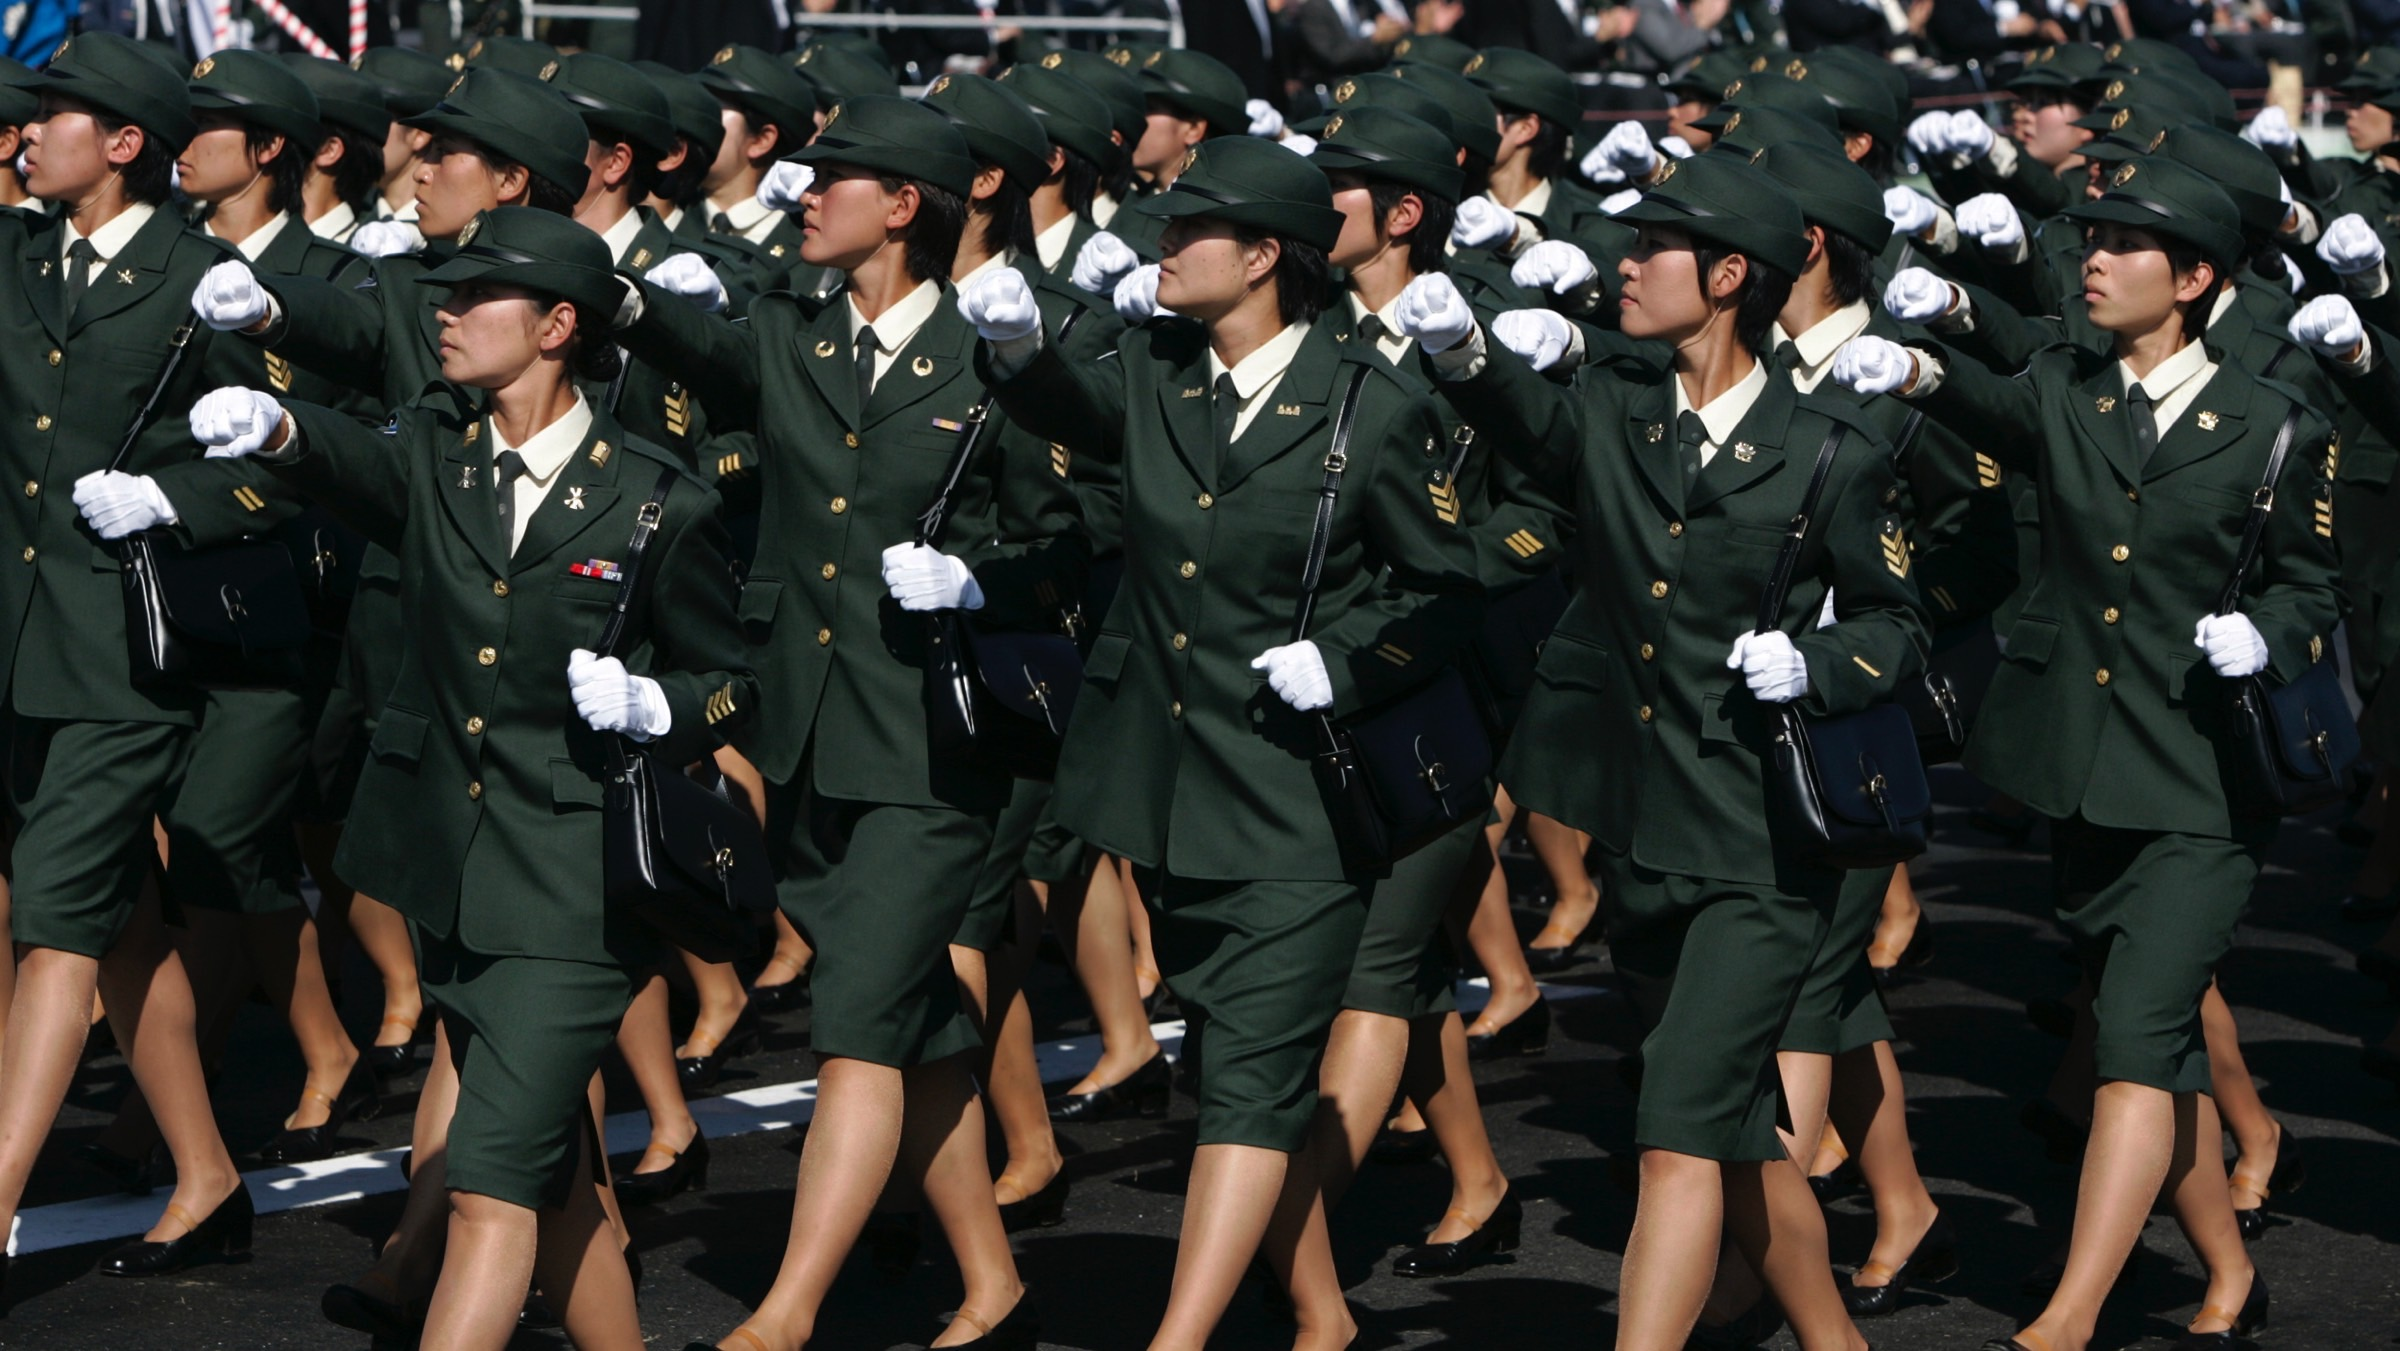 japan-military-wives-forum-naked-titless-ladies